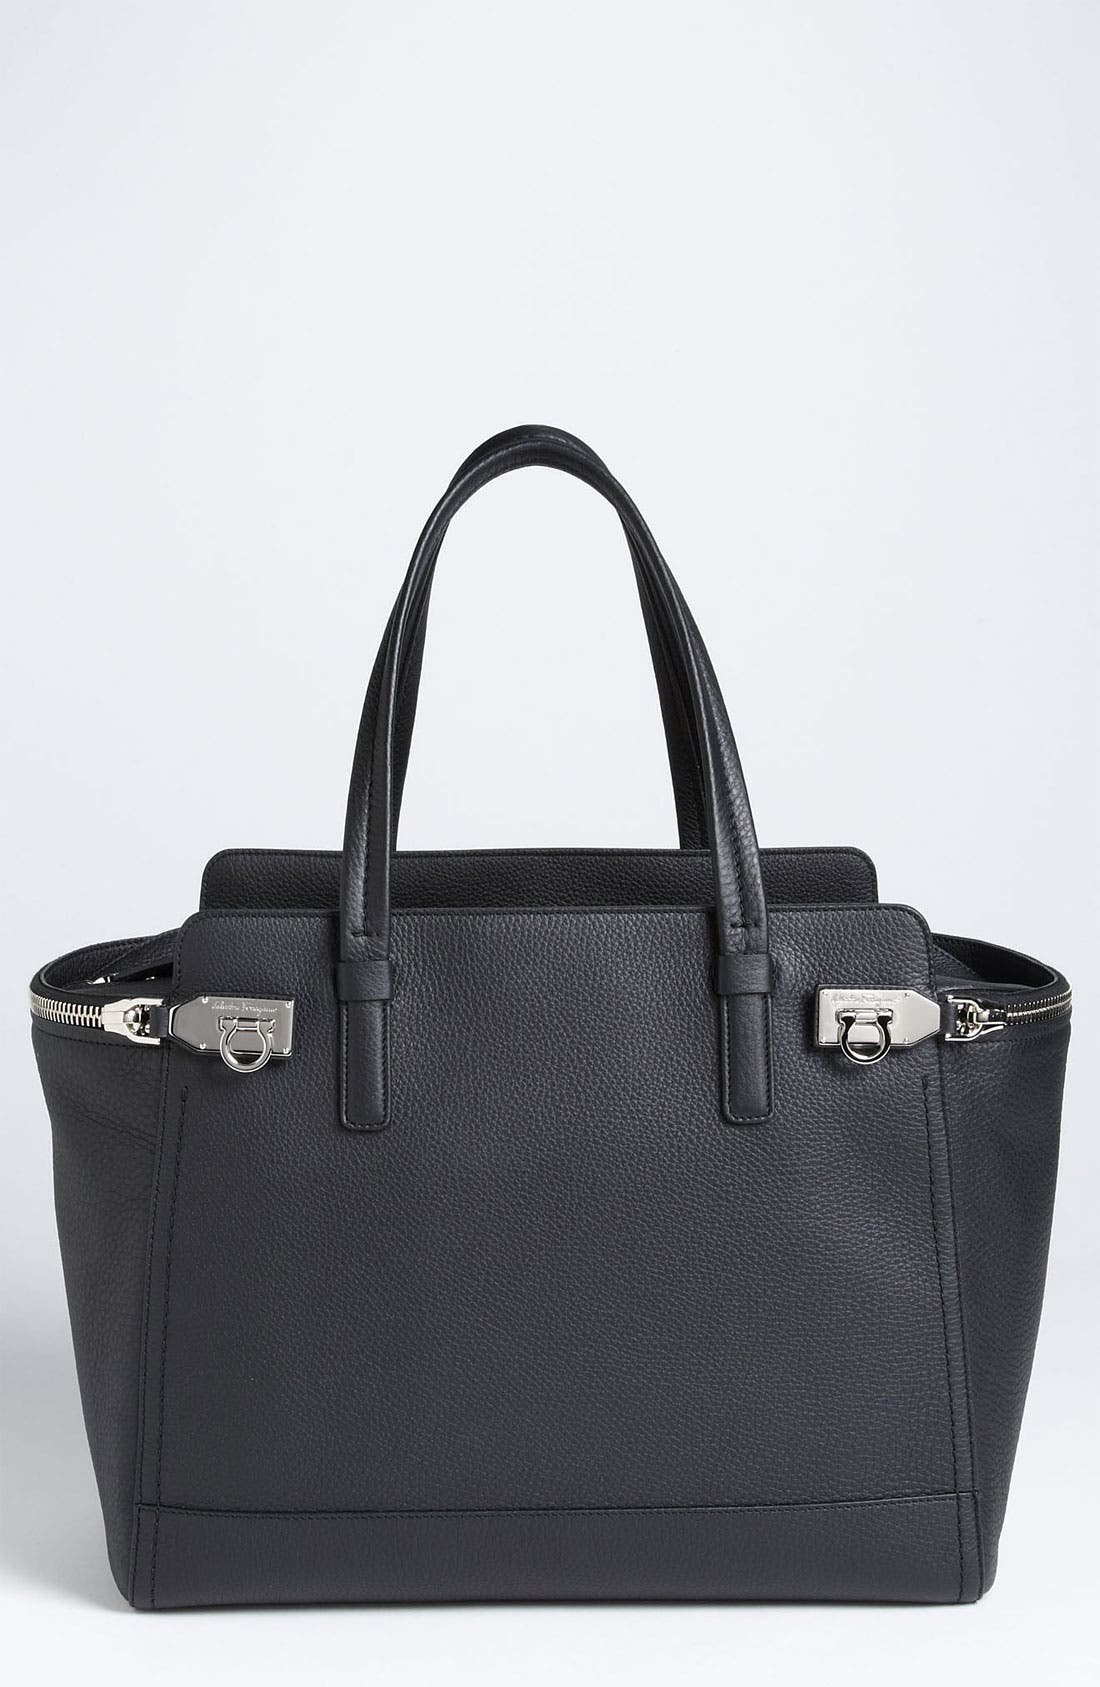 Main Image - Salvatore Ferragamo 'Arianna - Medium' Leather Satchel